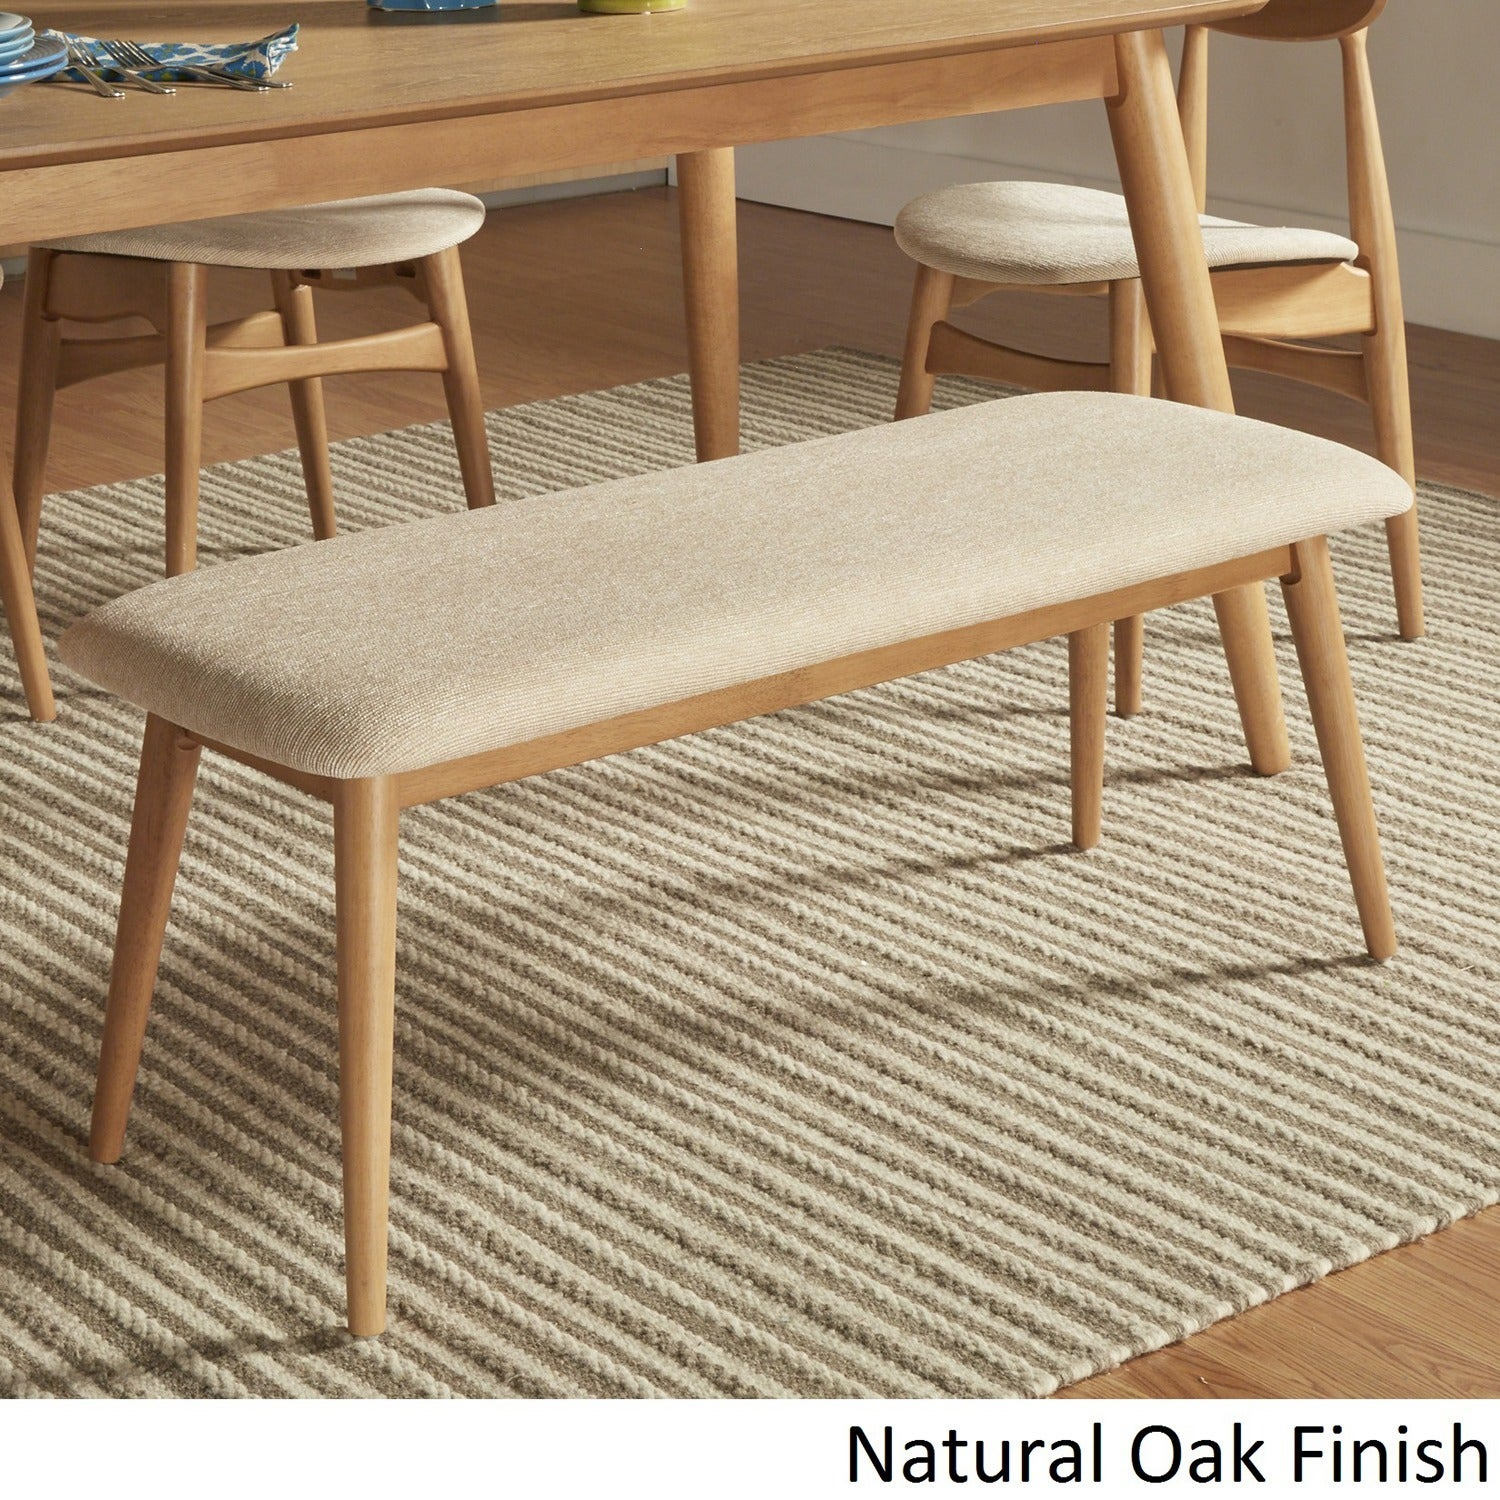 Norwegian Danish Modern Tapered Upholstered Dining Bench iNSPIRE Q